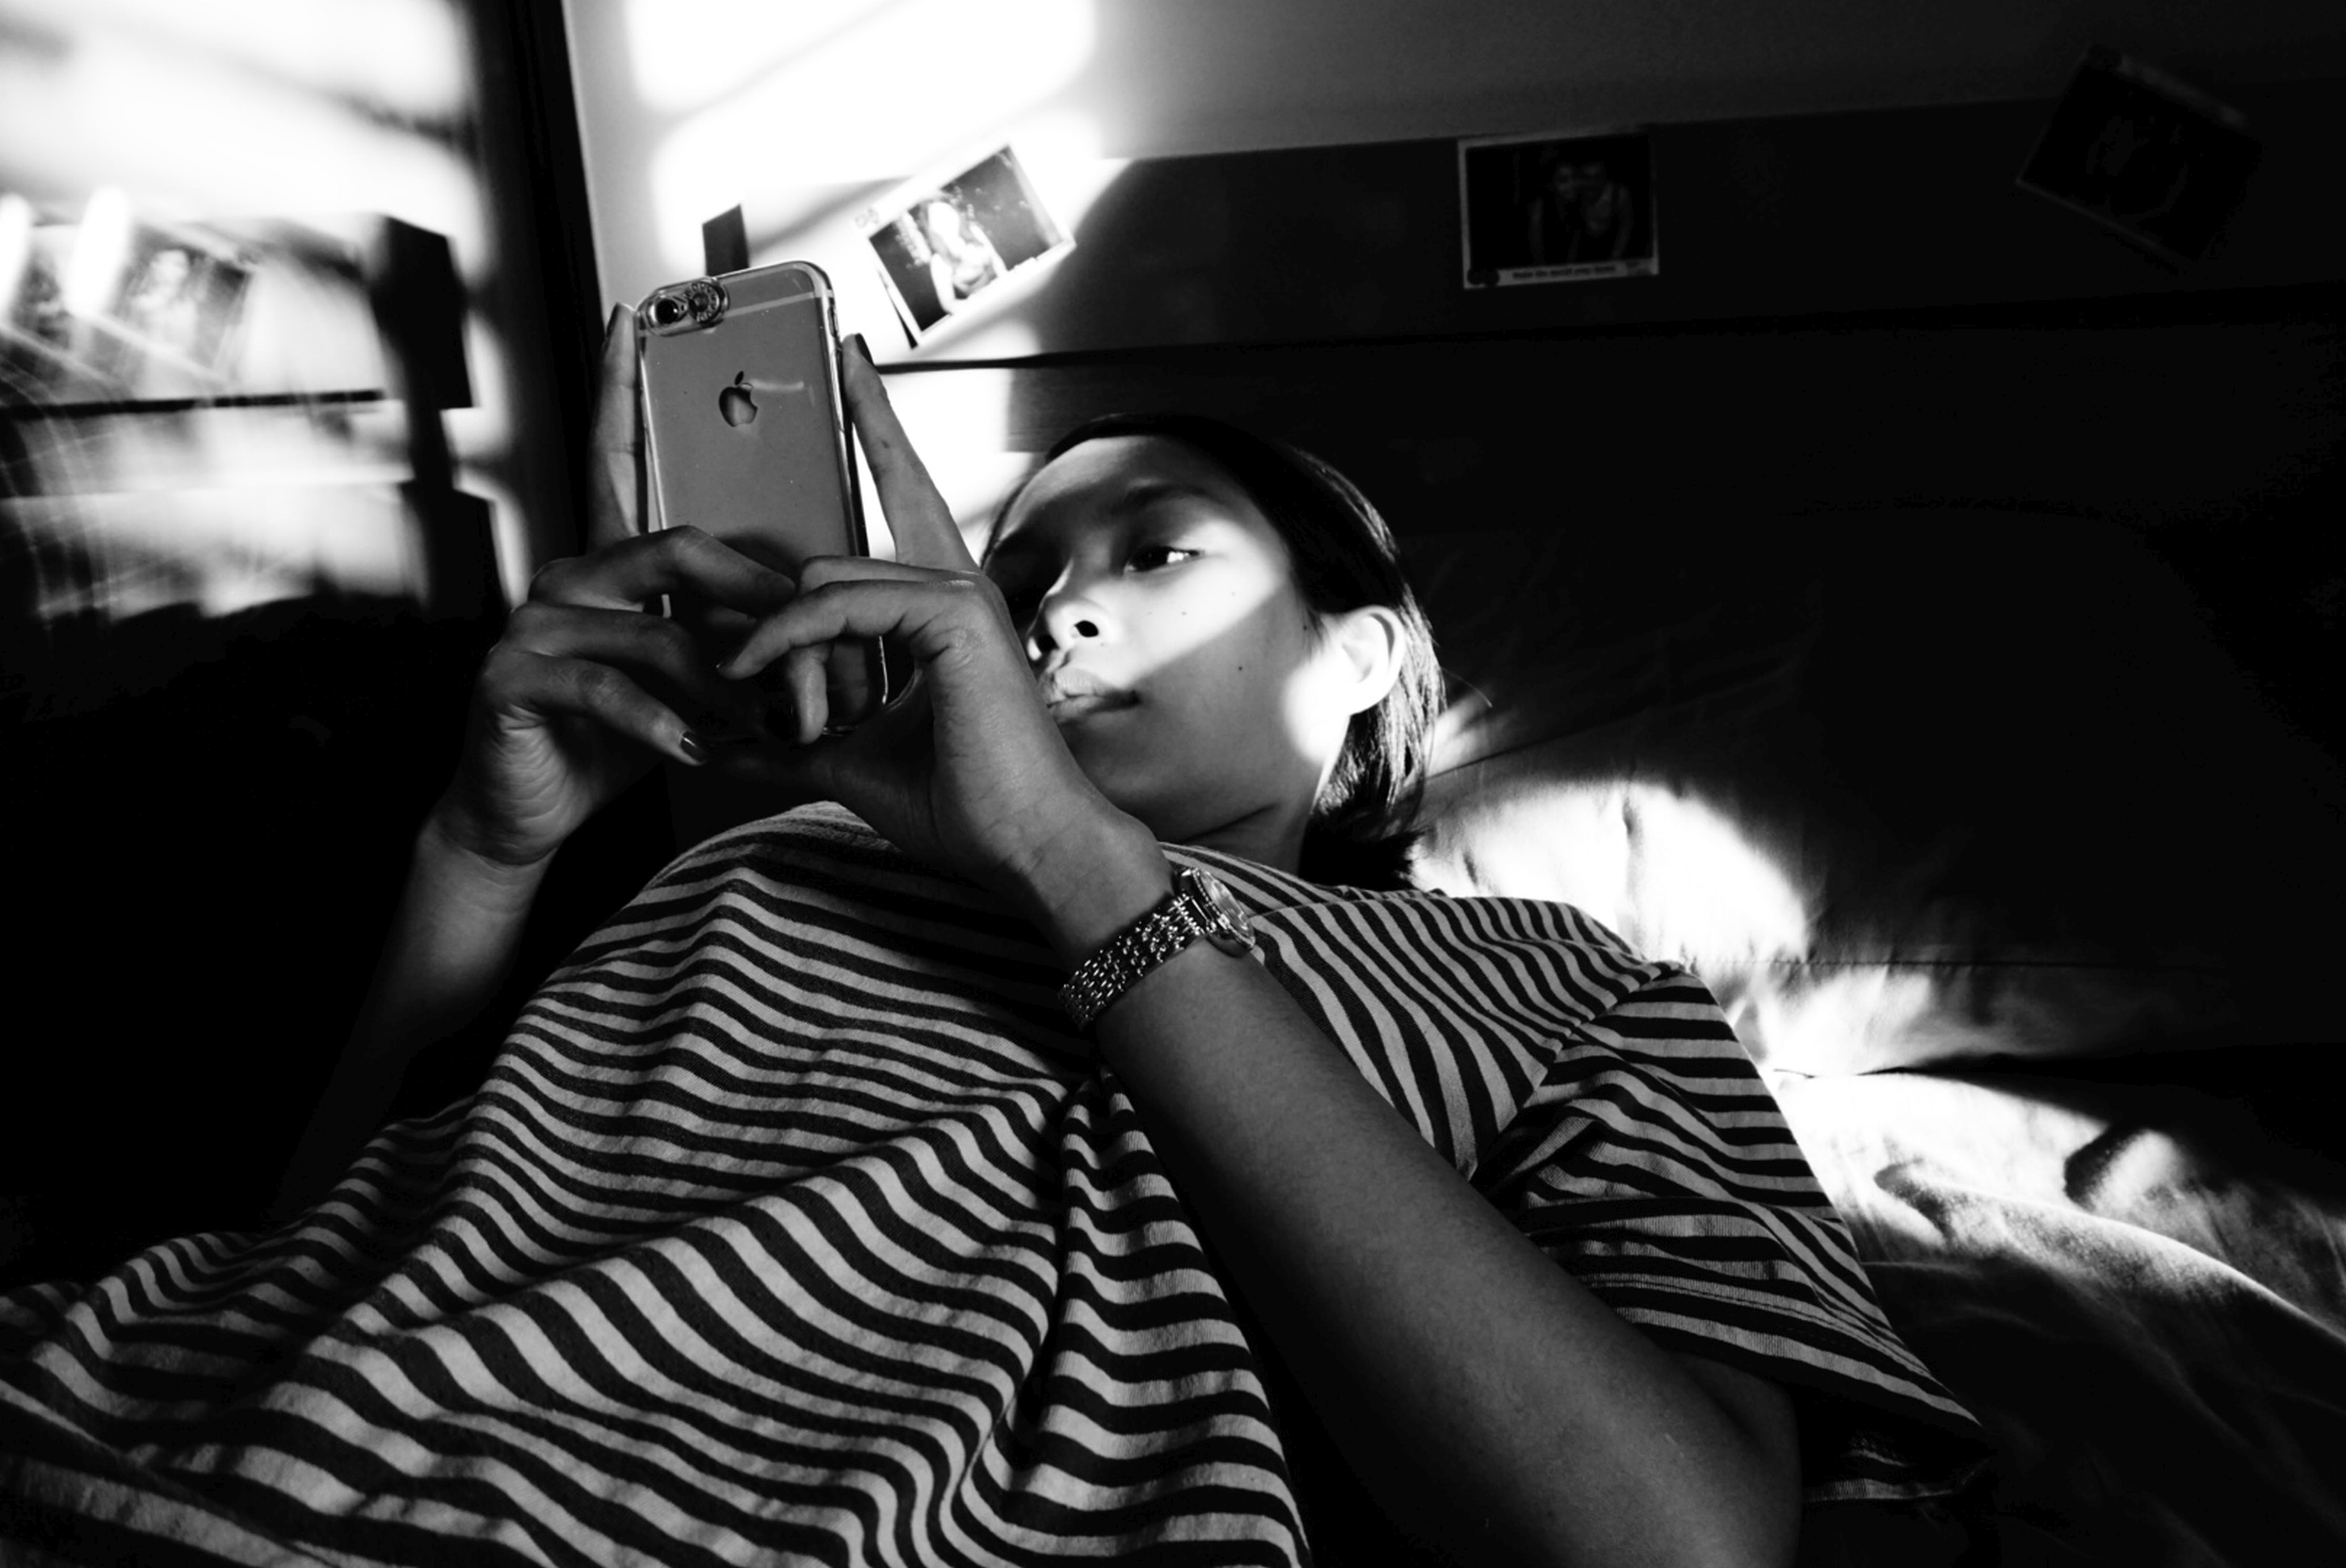 grayscale photography of woman wearing striped t-shirt holding iPhone 6 lying on bed